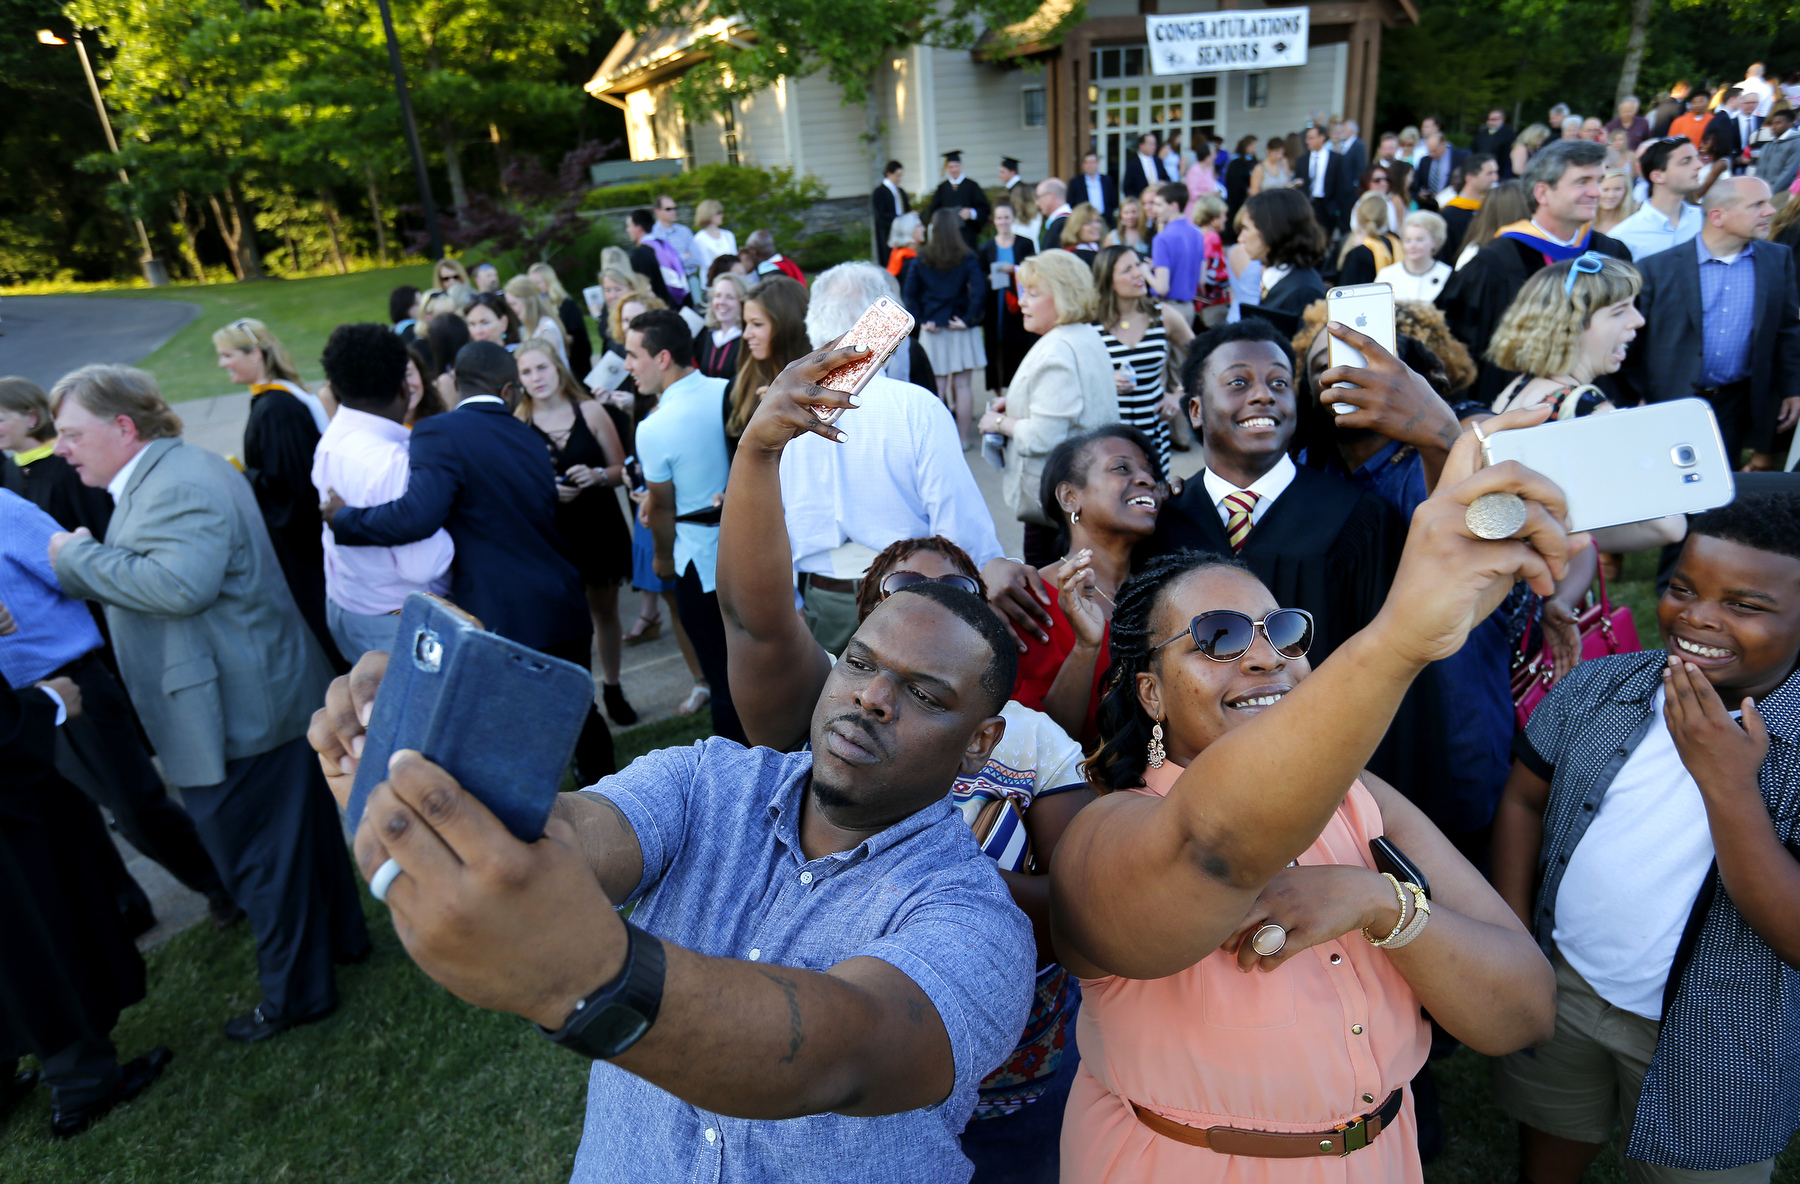 May 22, 2016 - Family members surround Donovan Borum to make selfies with their star moments after his graduation ceremony ended on the St. George's Collierville campus. With a full-ride scholarship to Wake Forest University worth more than $60,000 Borum will be the first member of his family to attend a four-year university. (Mike Brown/The Commercial Appeal)